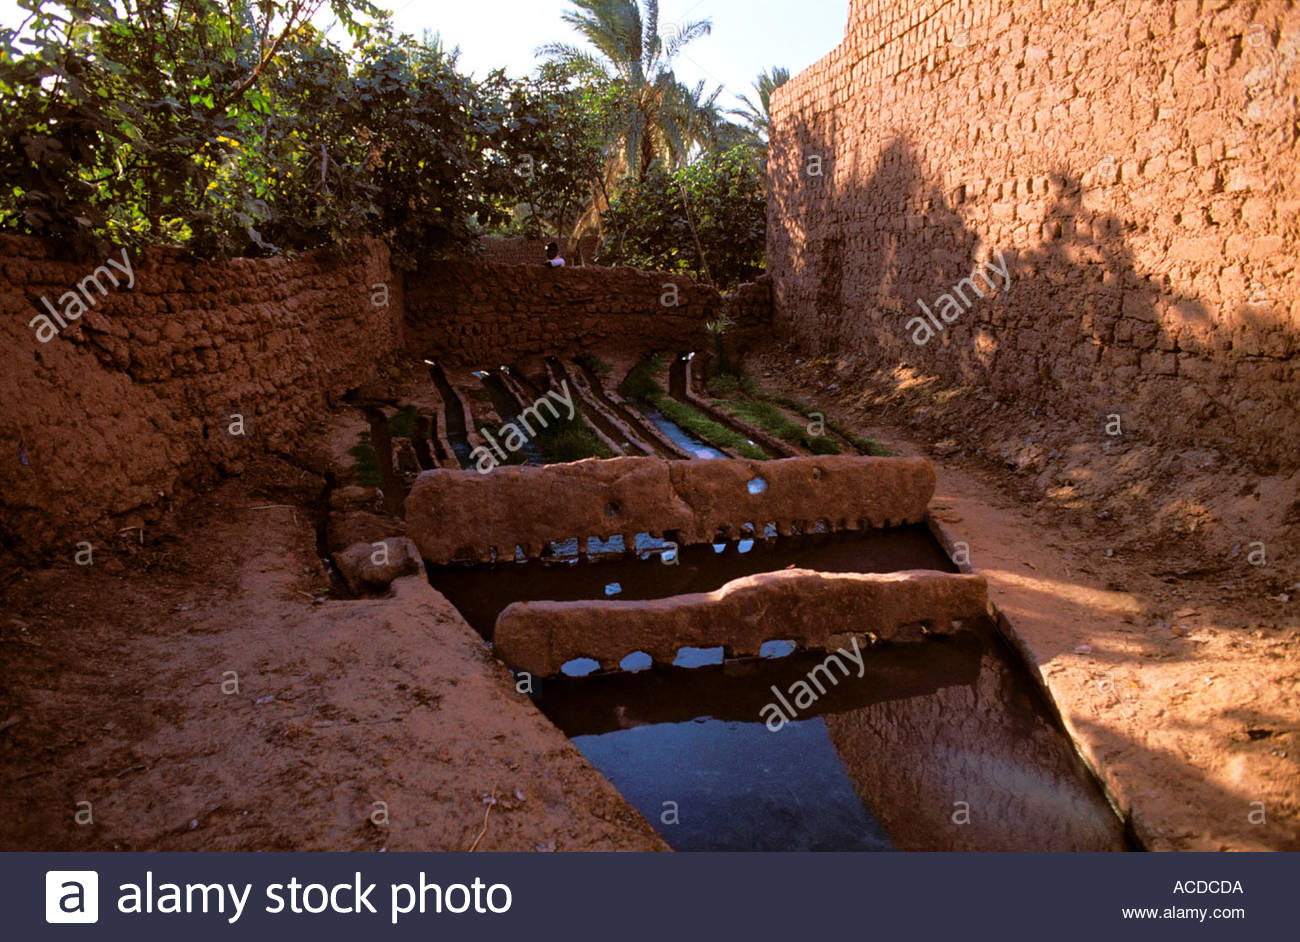 oasis irrigation canal water comb distribution garden agriculture ...